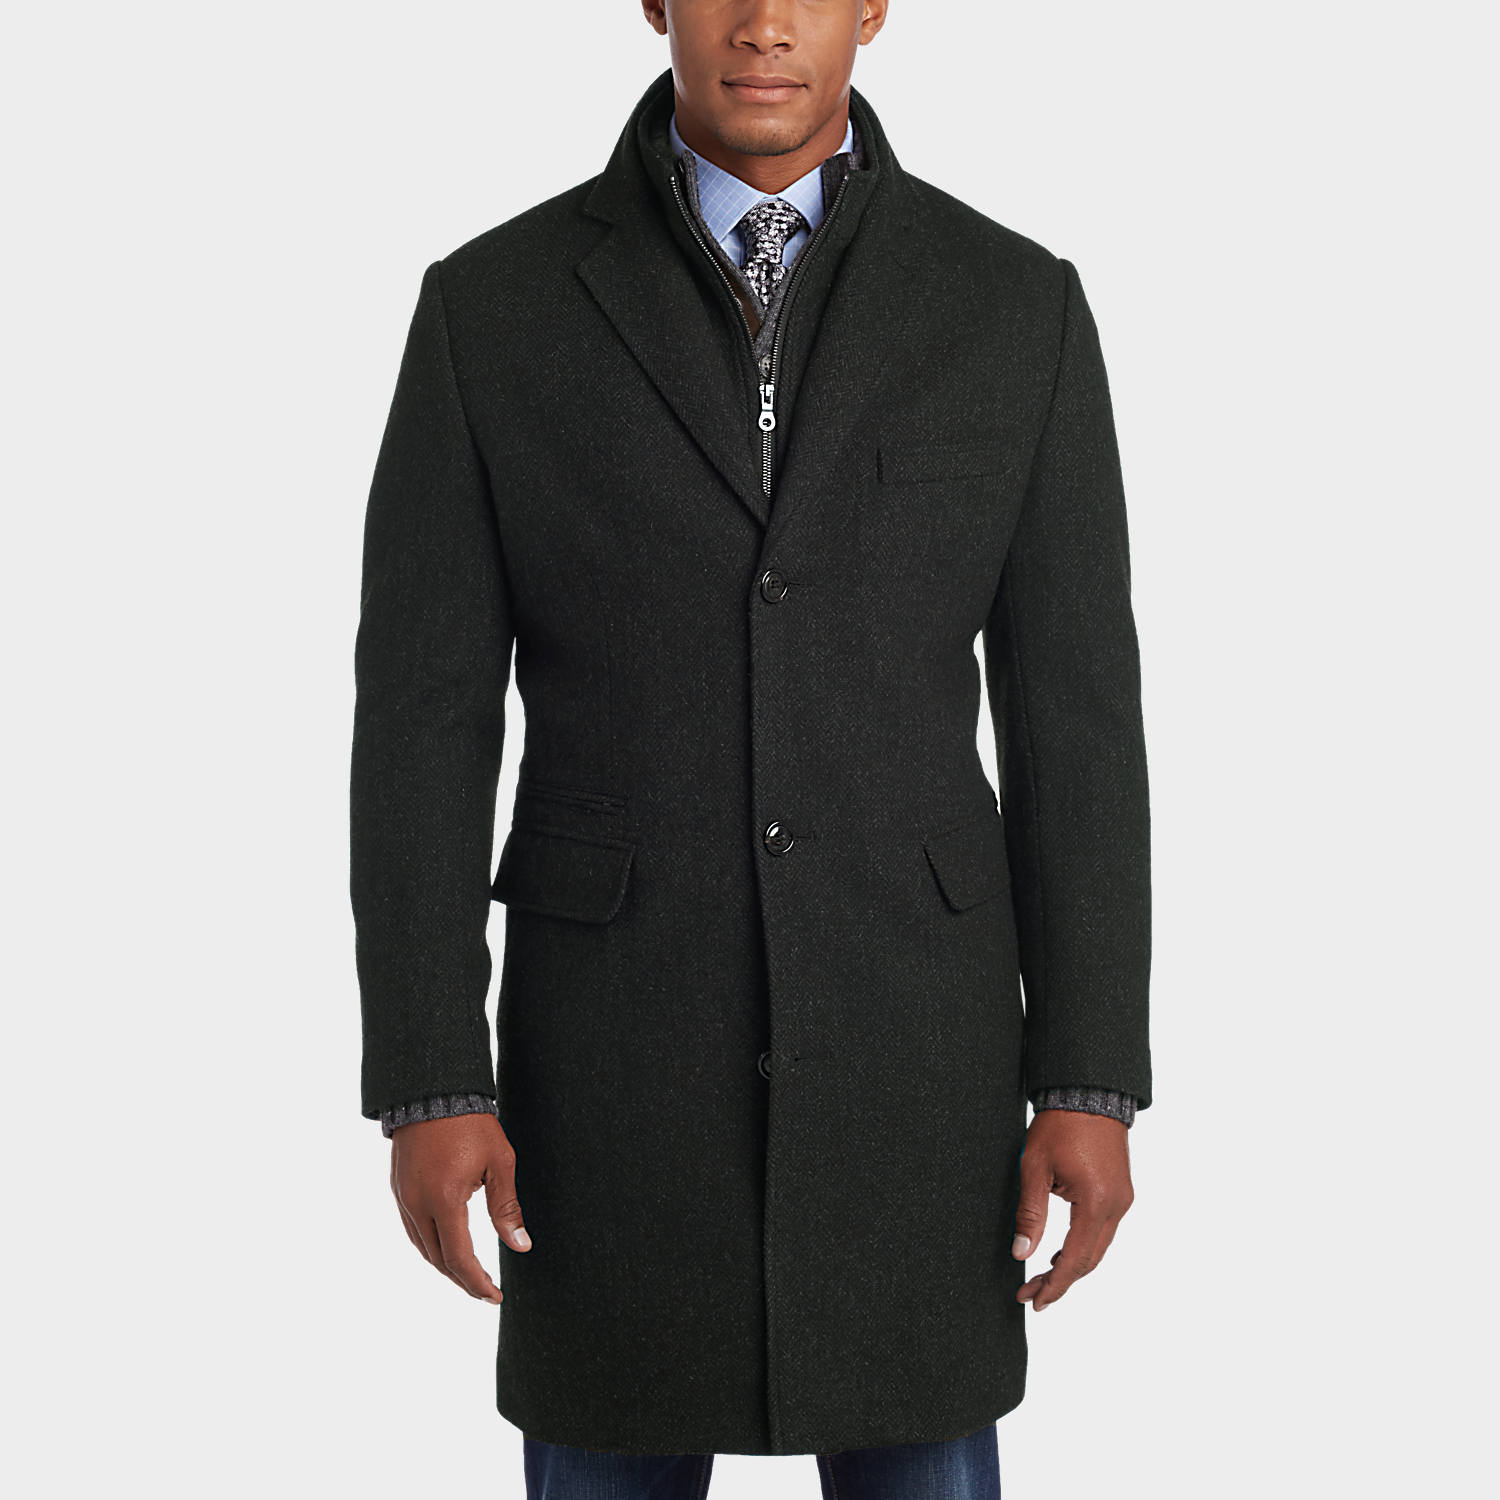 Shop for men's coats at gehedoruqigimate.ml Browse all outerwear inlcuding coats, jacktets, hoodies and vests.